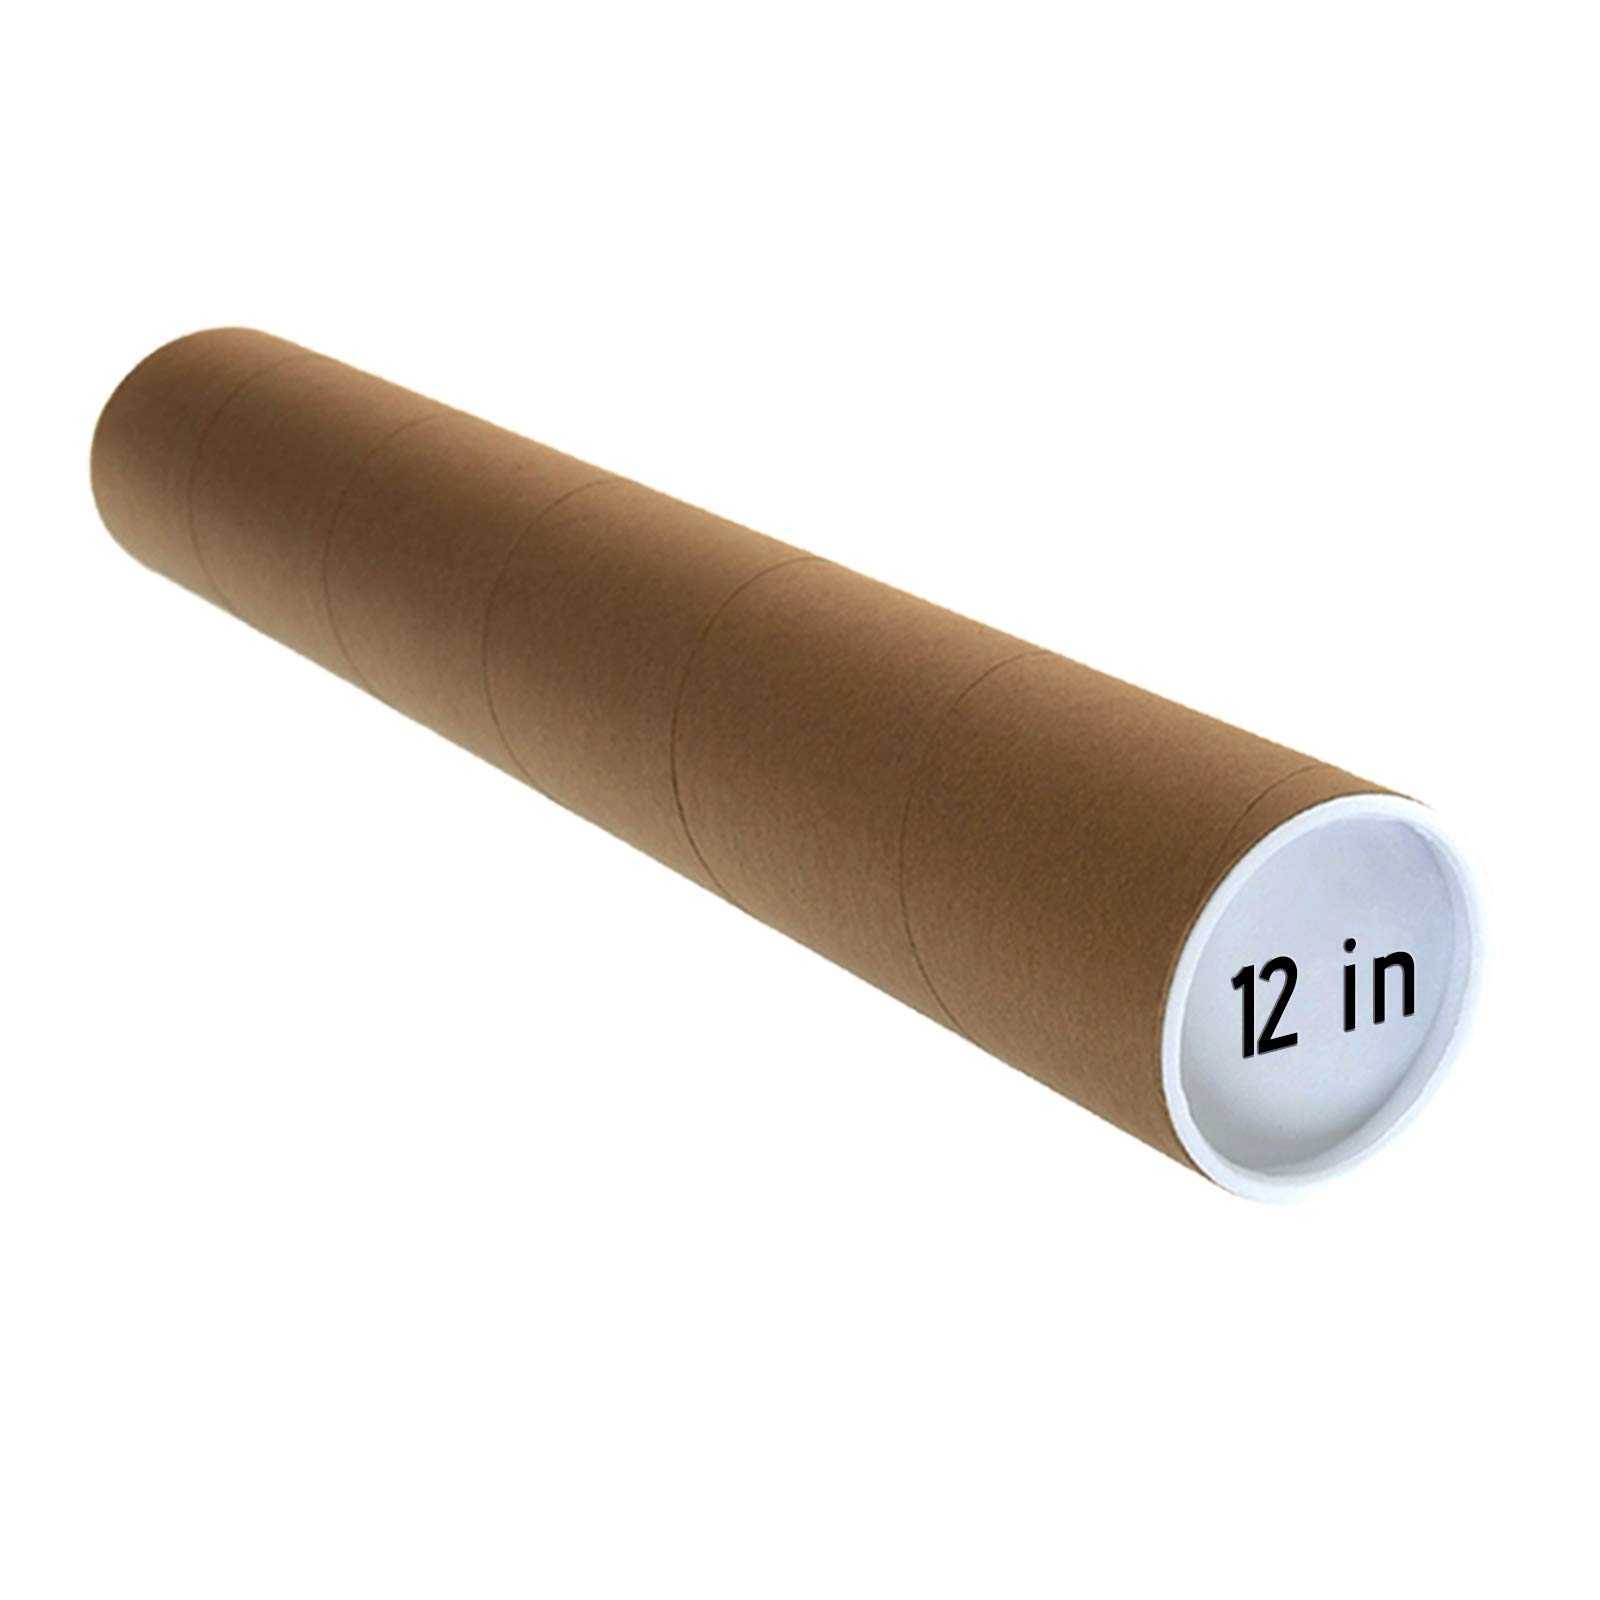 White Mailing Tubes with Caps 3 Pack 3-inch x 30 inch usable Length | Tubeequeen